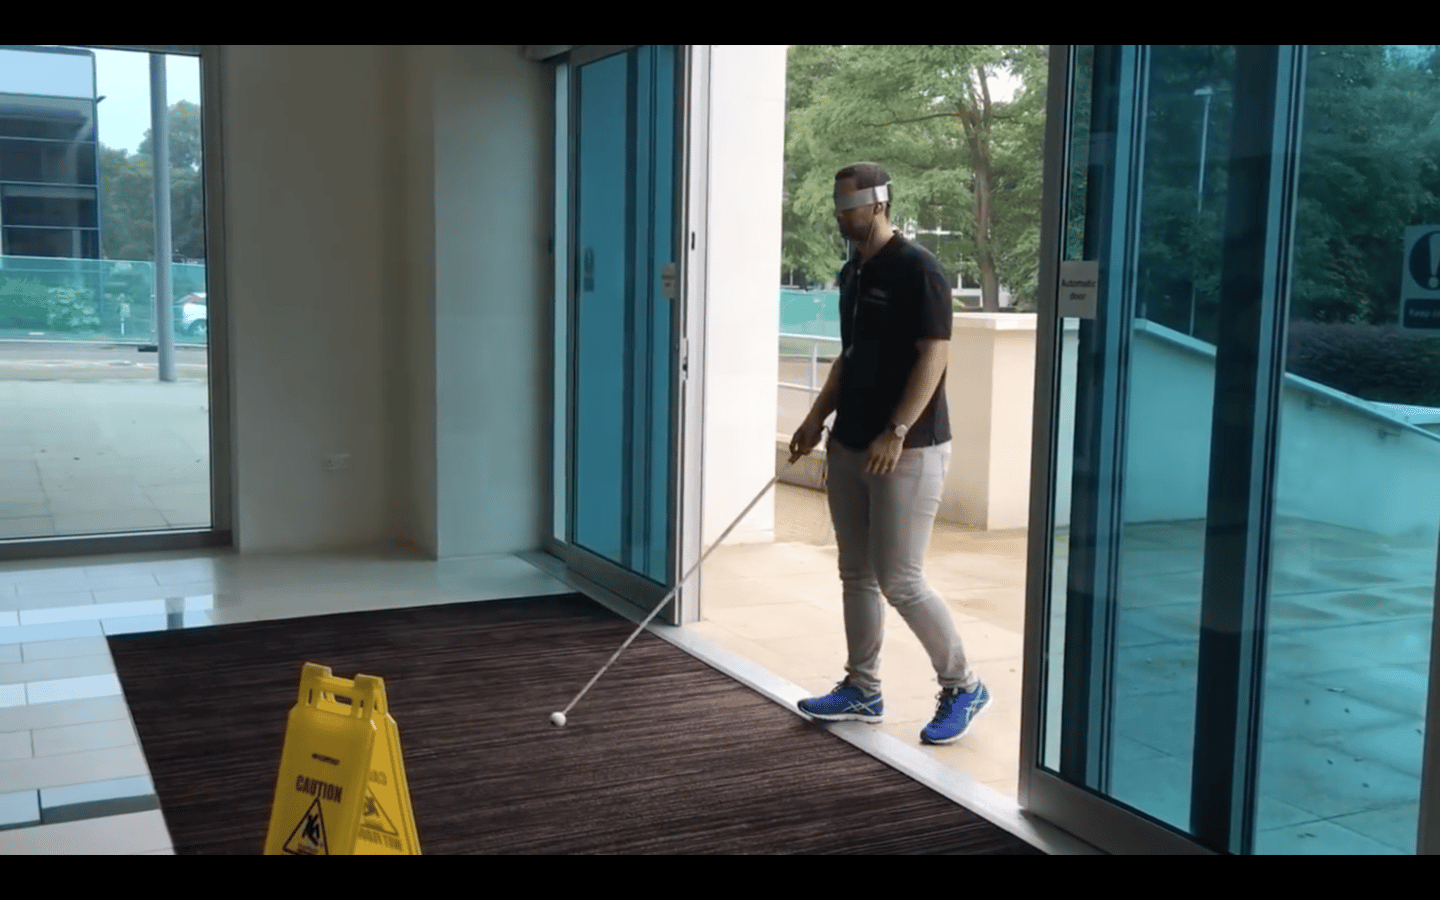 mySmartCane is very much in its early prototype phase